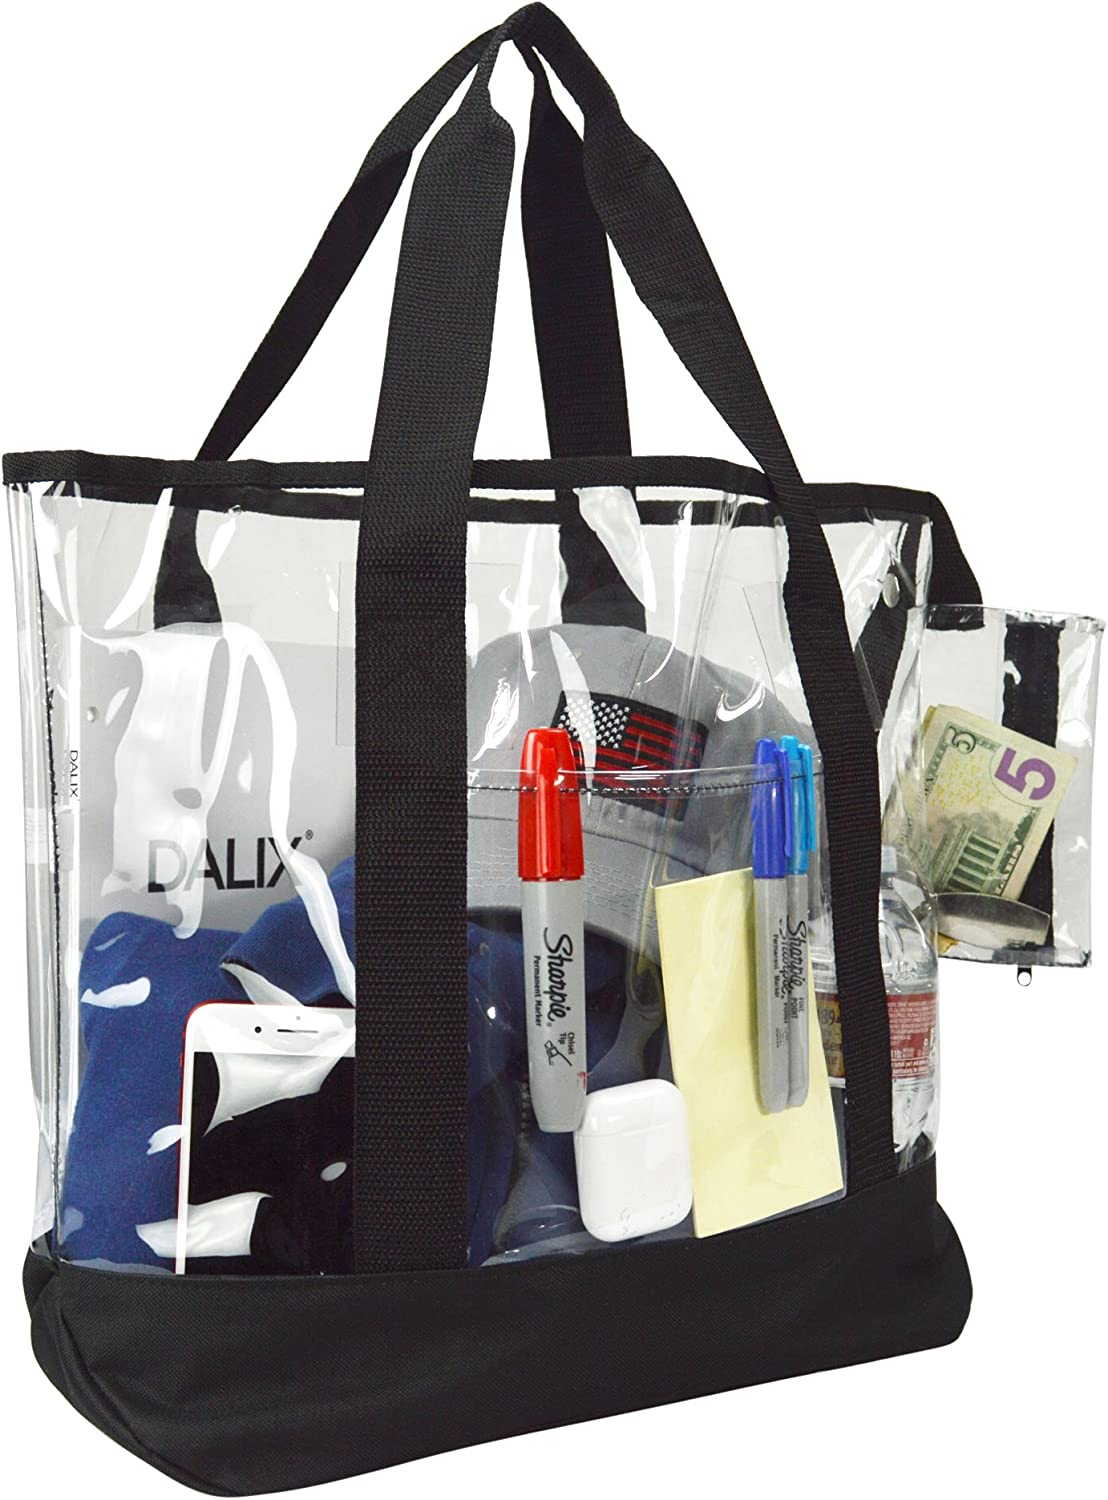 20 Large Clear Tote Bag with Small Pouch